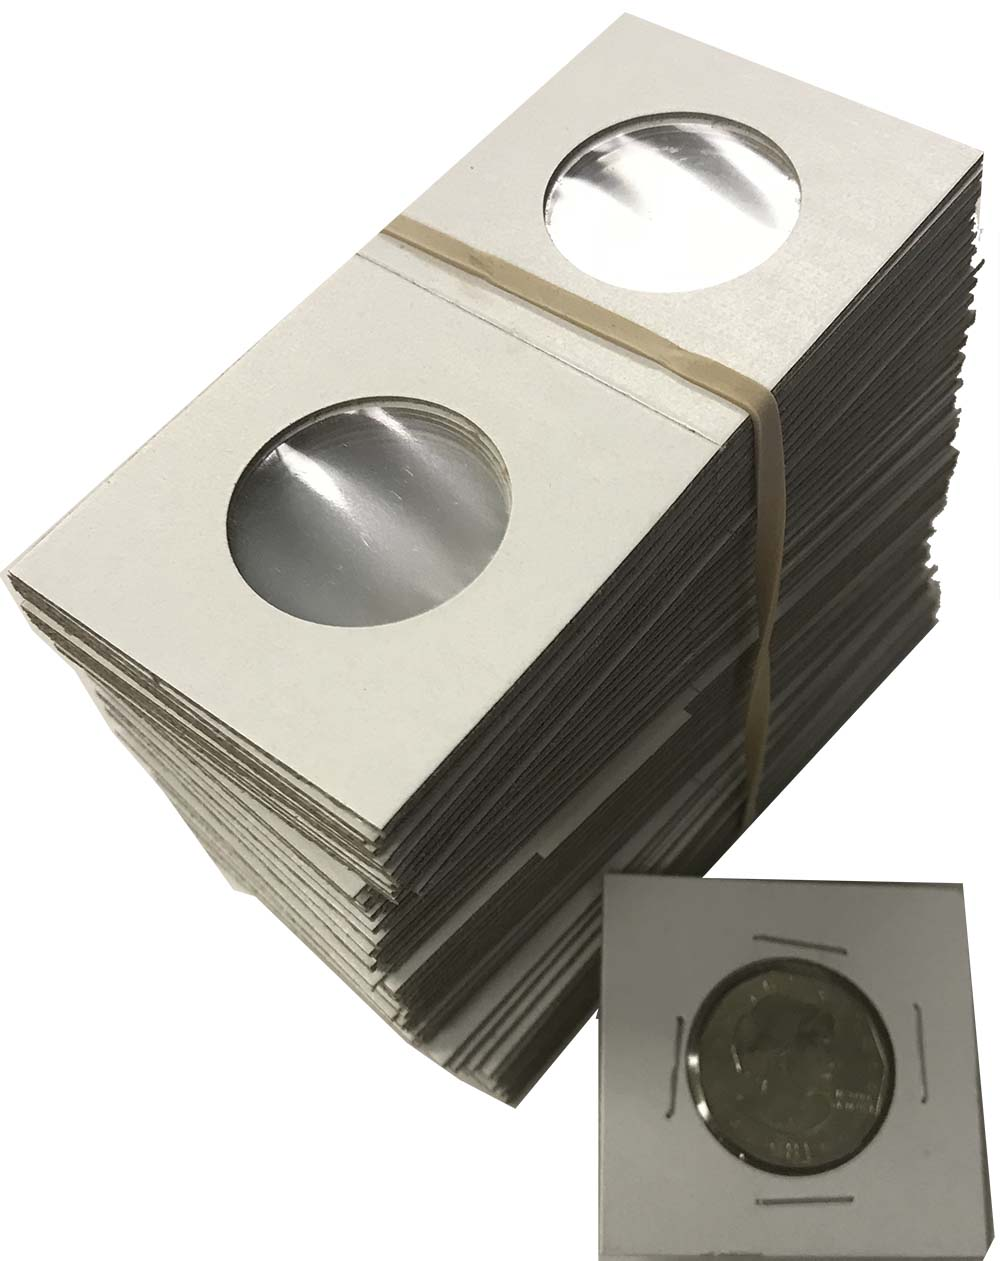 2x2 Coin Flips Album Pages 20 Pockets 20 Cowens Vinyl Sheets For 3 Rings Binders